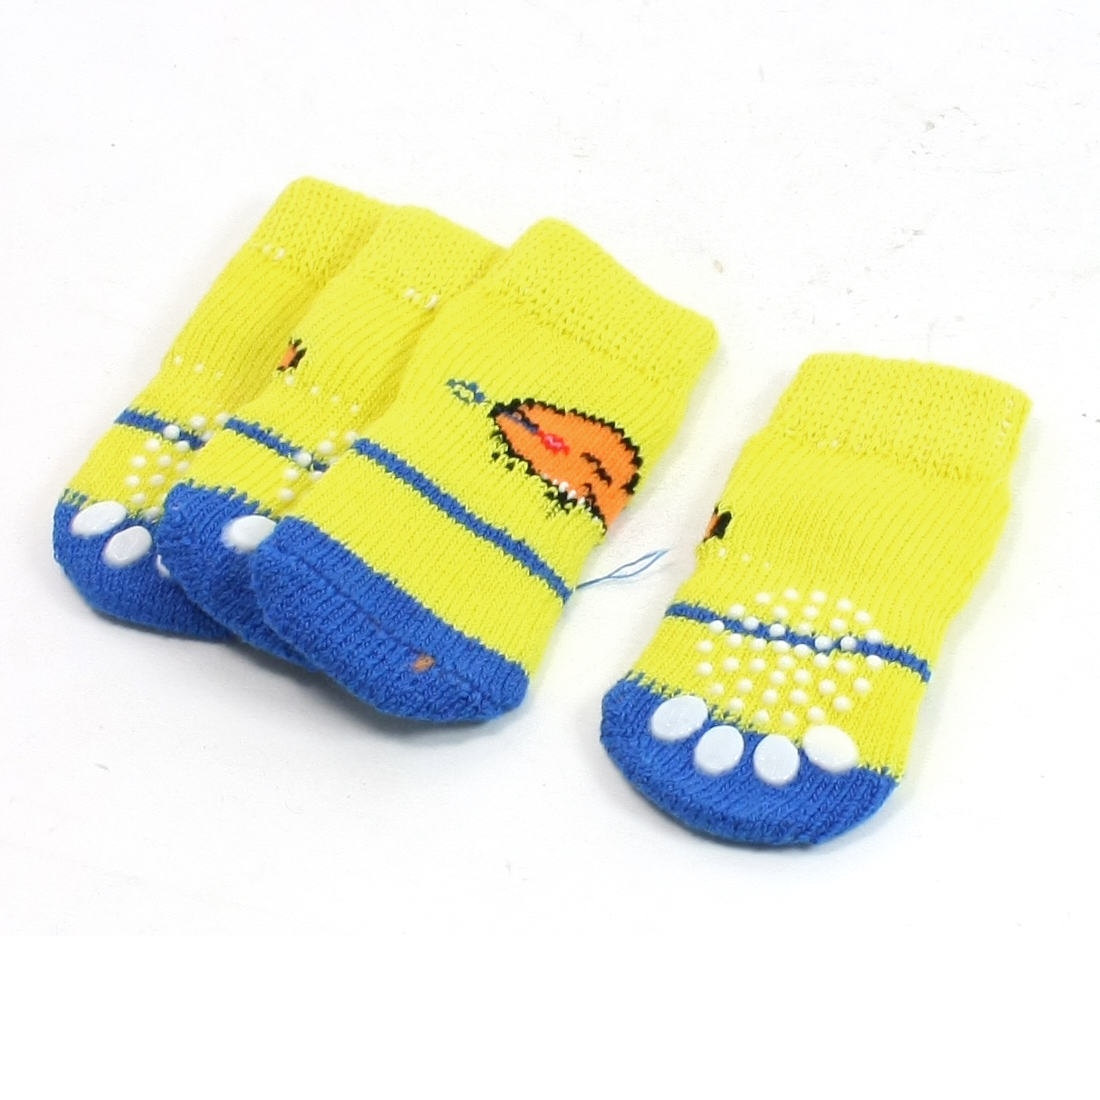 2 Pairs Paw Print Elastic Knitted Pet Dog Yorkie Socks Yellow Blue Size M